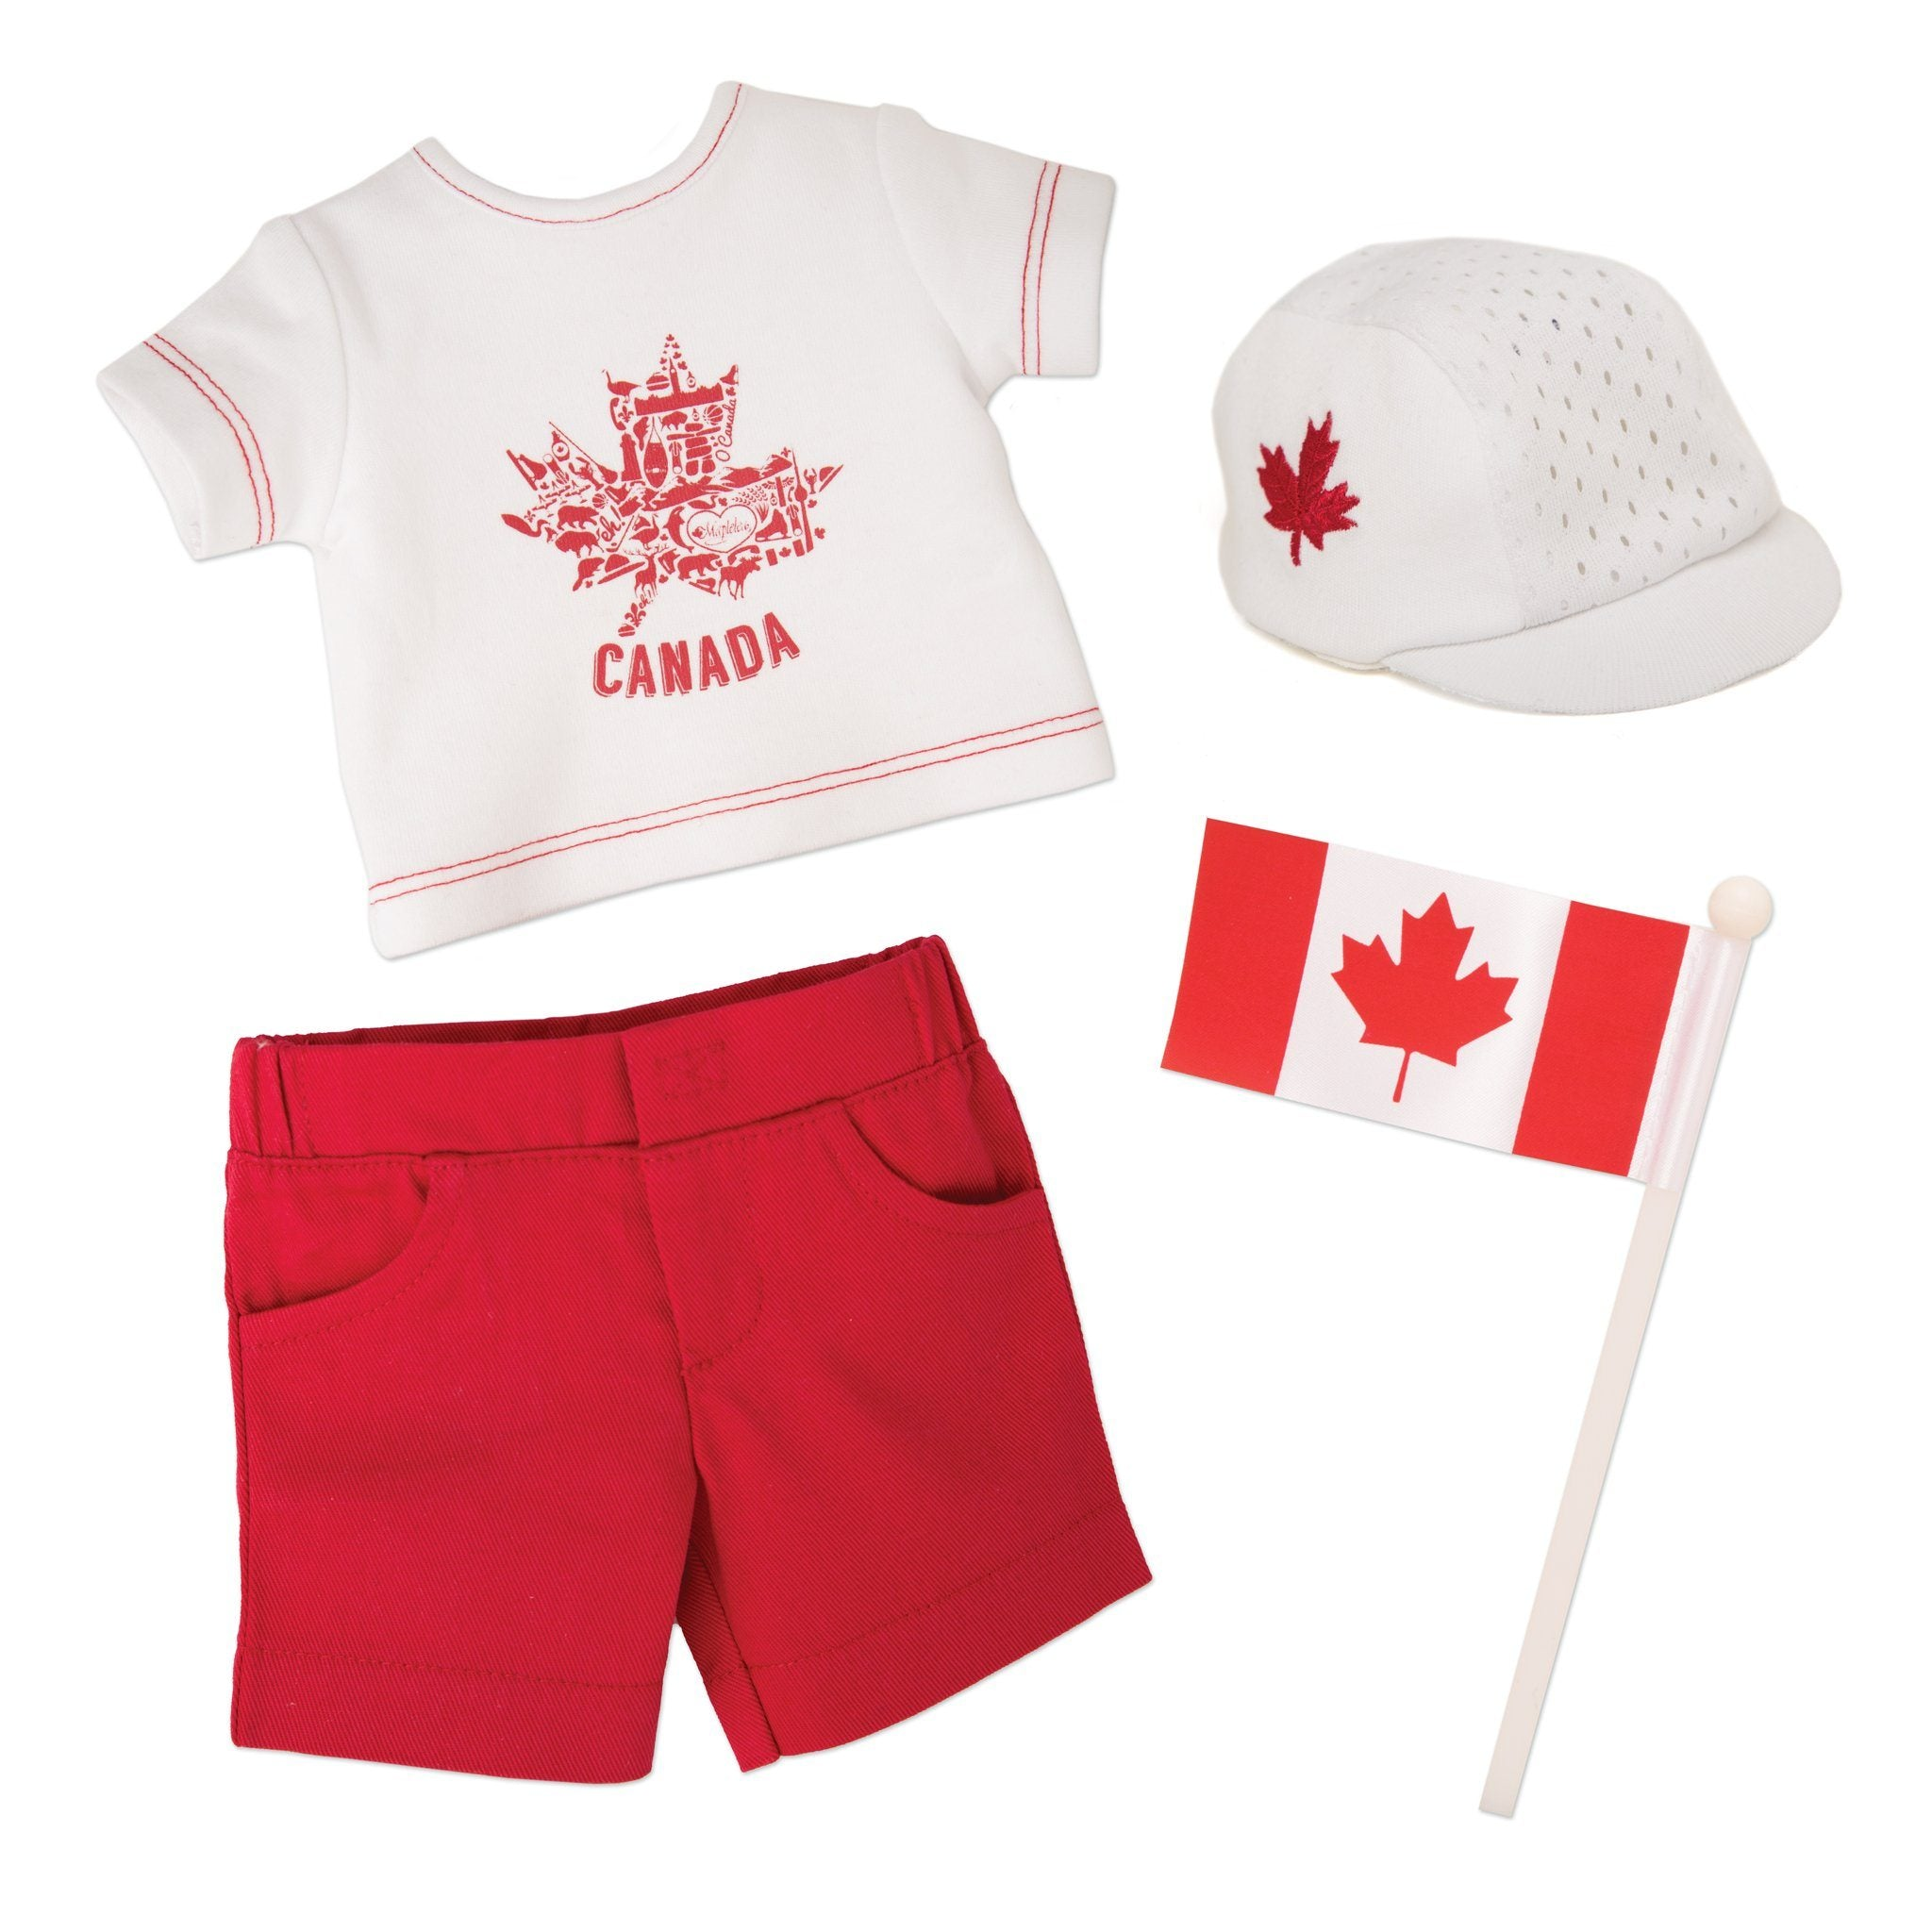 Canada Day Outfit graphic tee-shirt, red shorts, runners cap and Canada flag fits all 18 inch dolls.